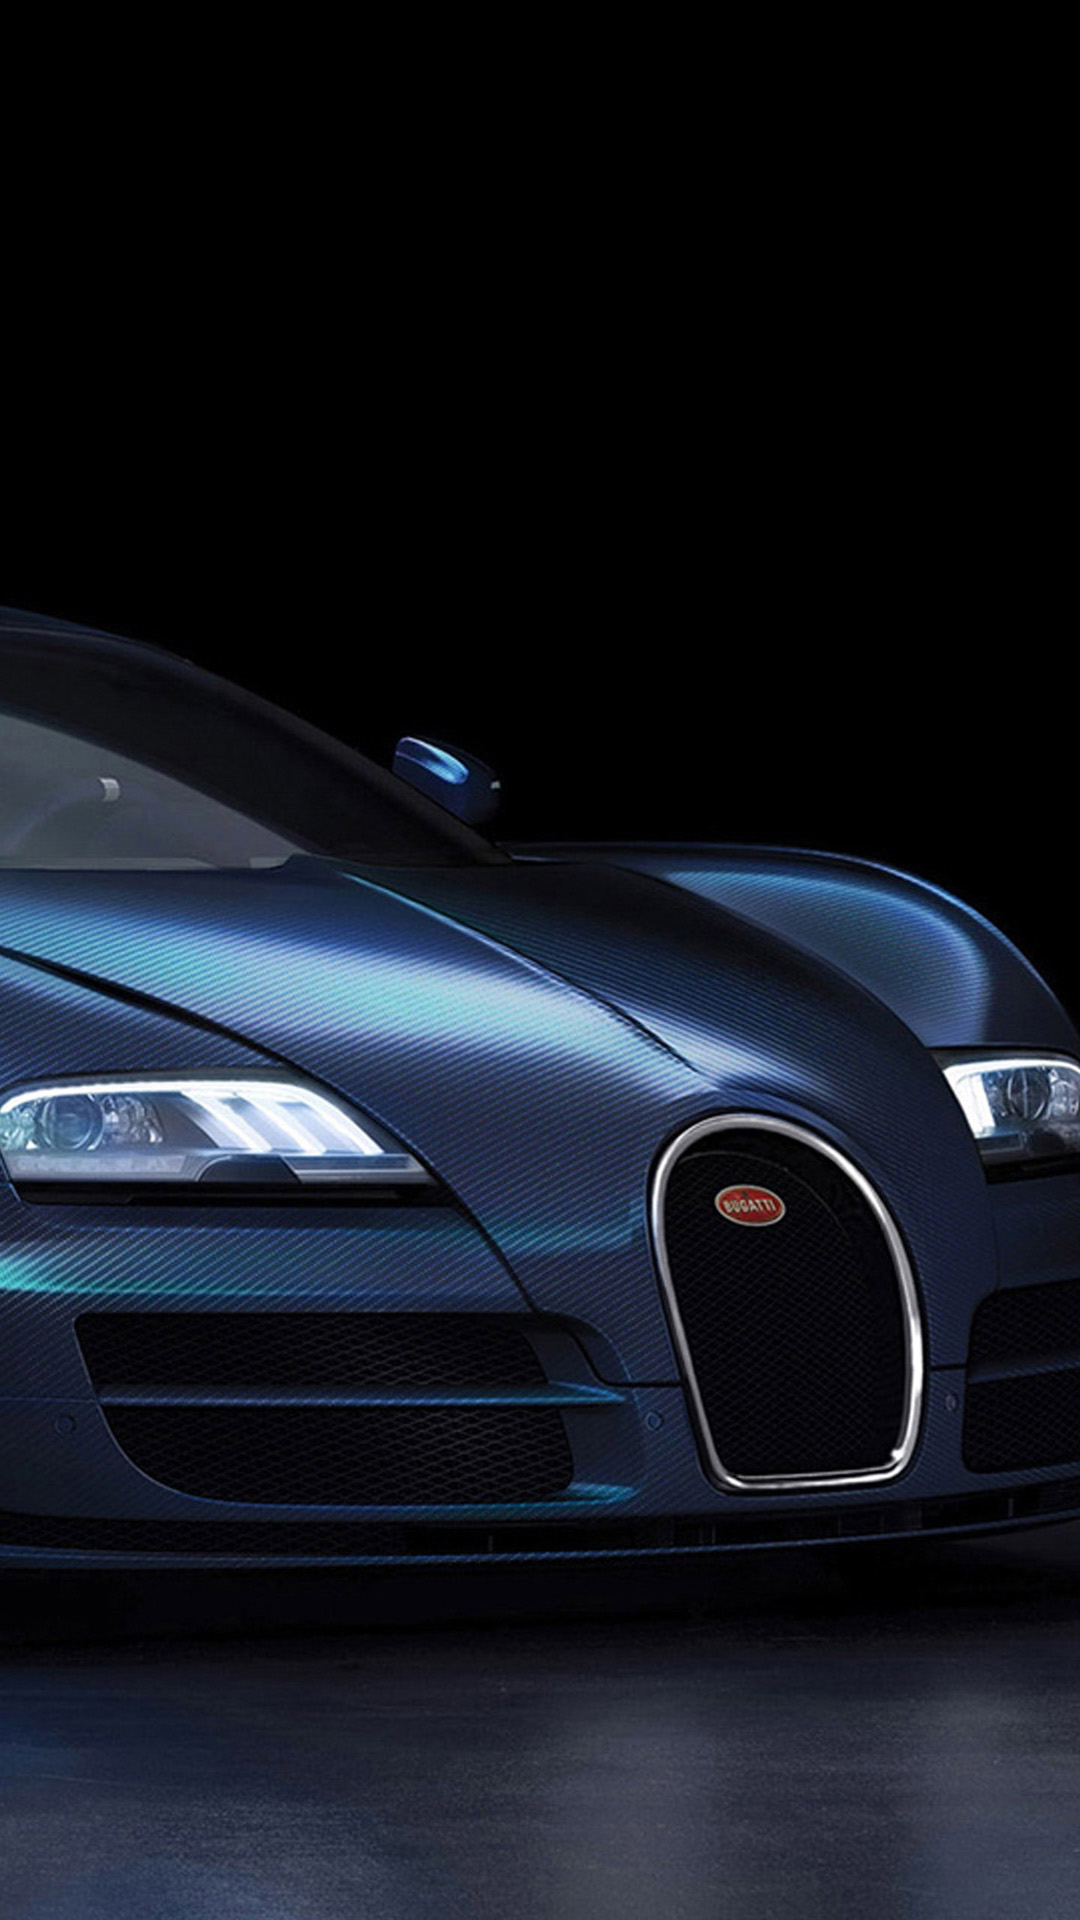 Bugatti Veyron Best Htc One Wallpapers Free And Easy To